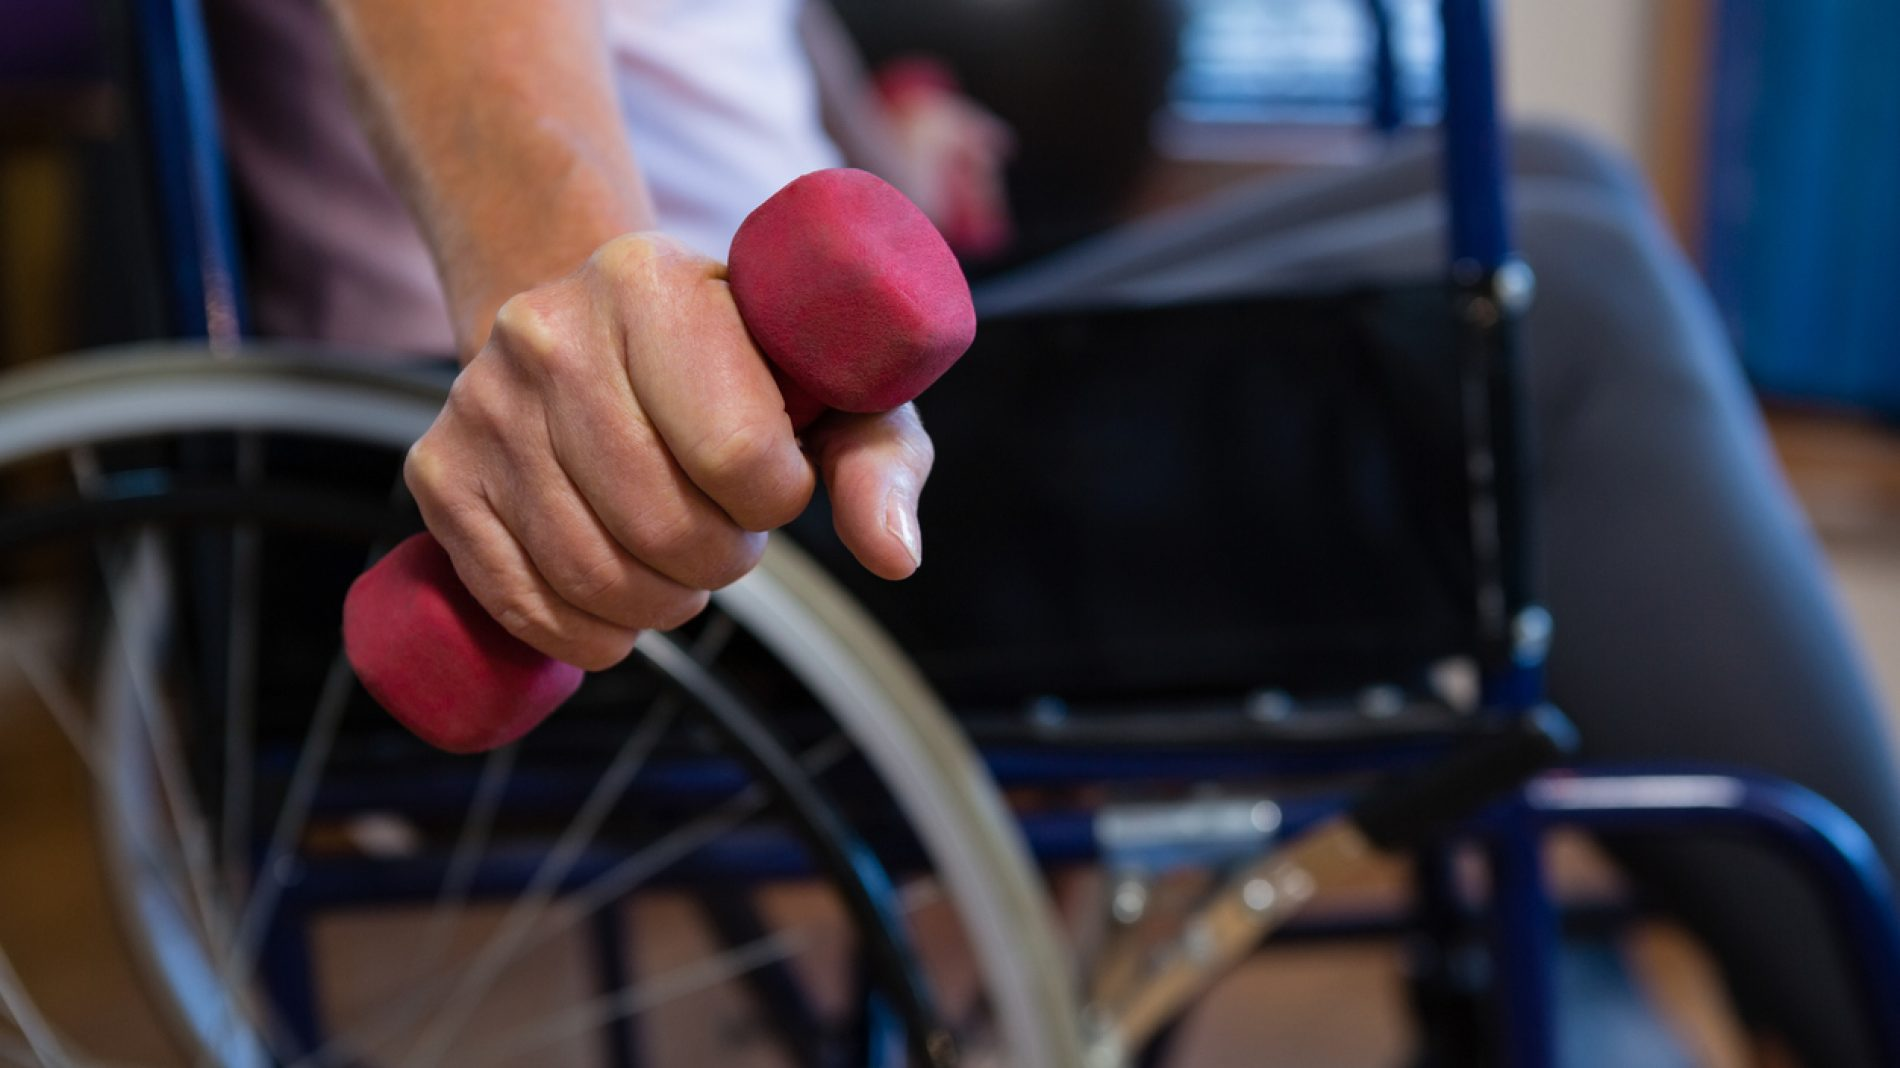 Senior woman in wheelchair performing exercise with dumbbell